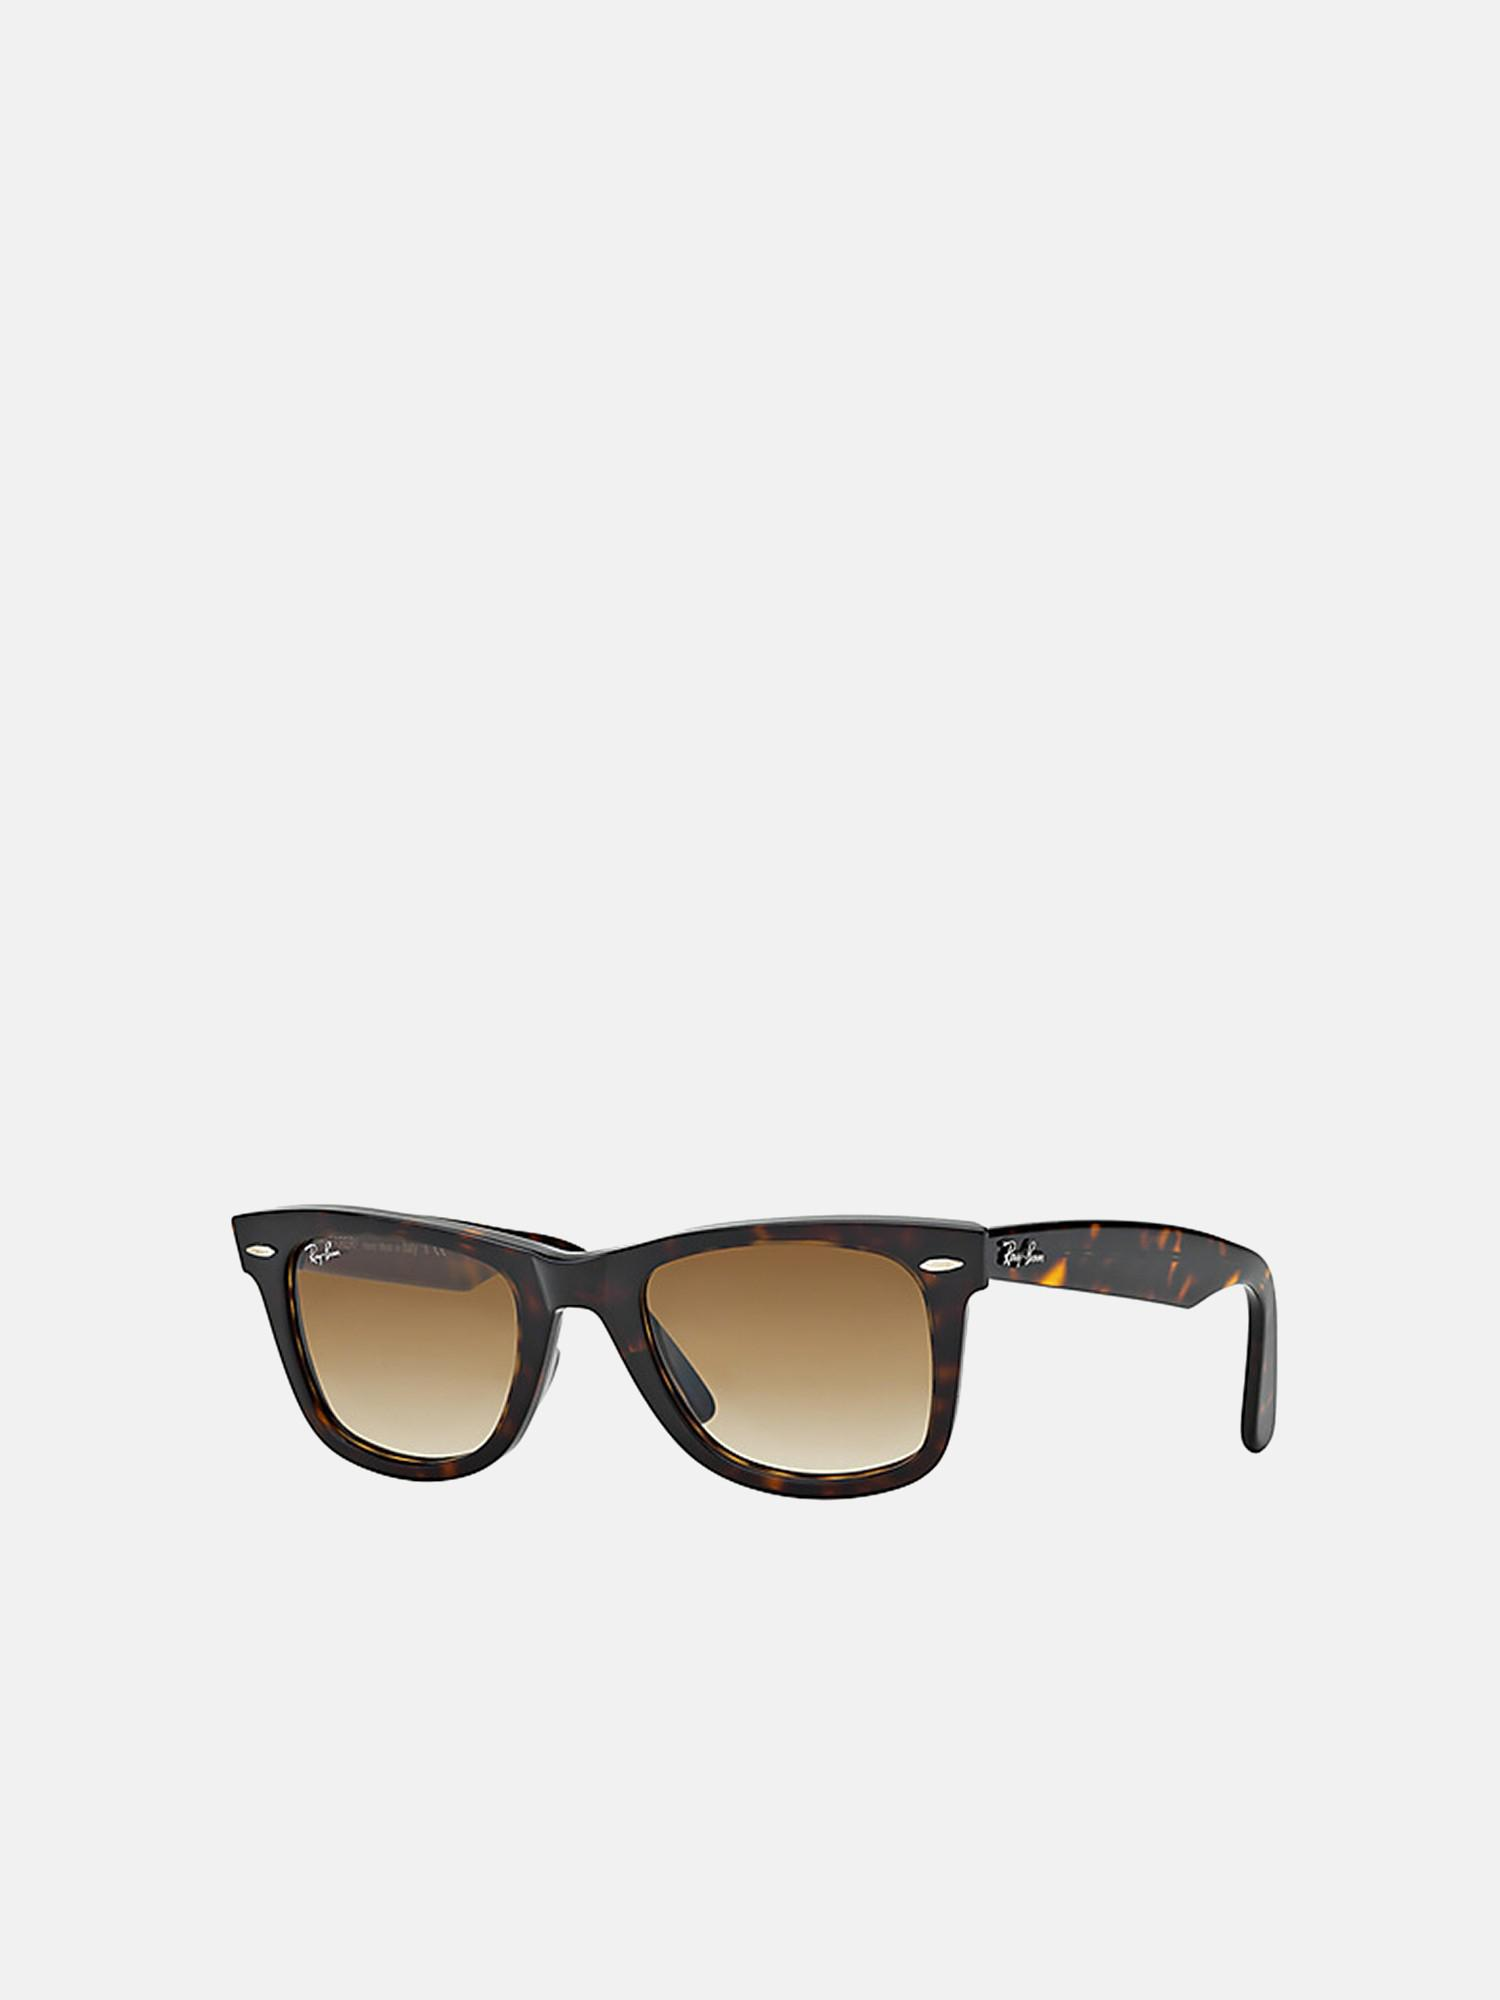 2e99294a2f Lyst - Ray-Ban Original Wayfarer  rb2140 902 51 50 in Brown